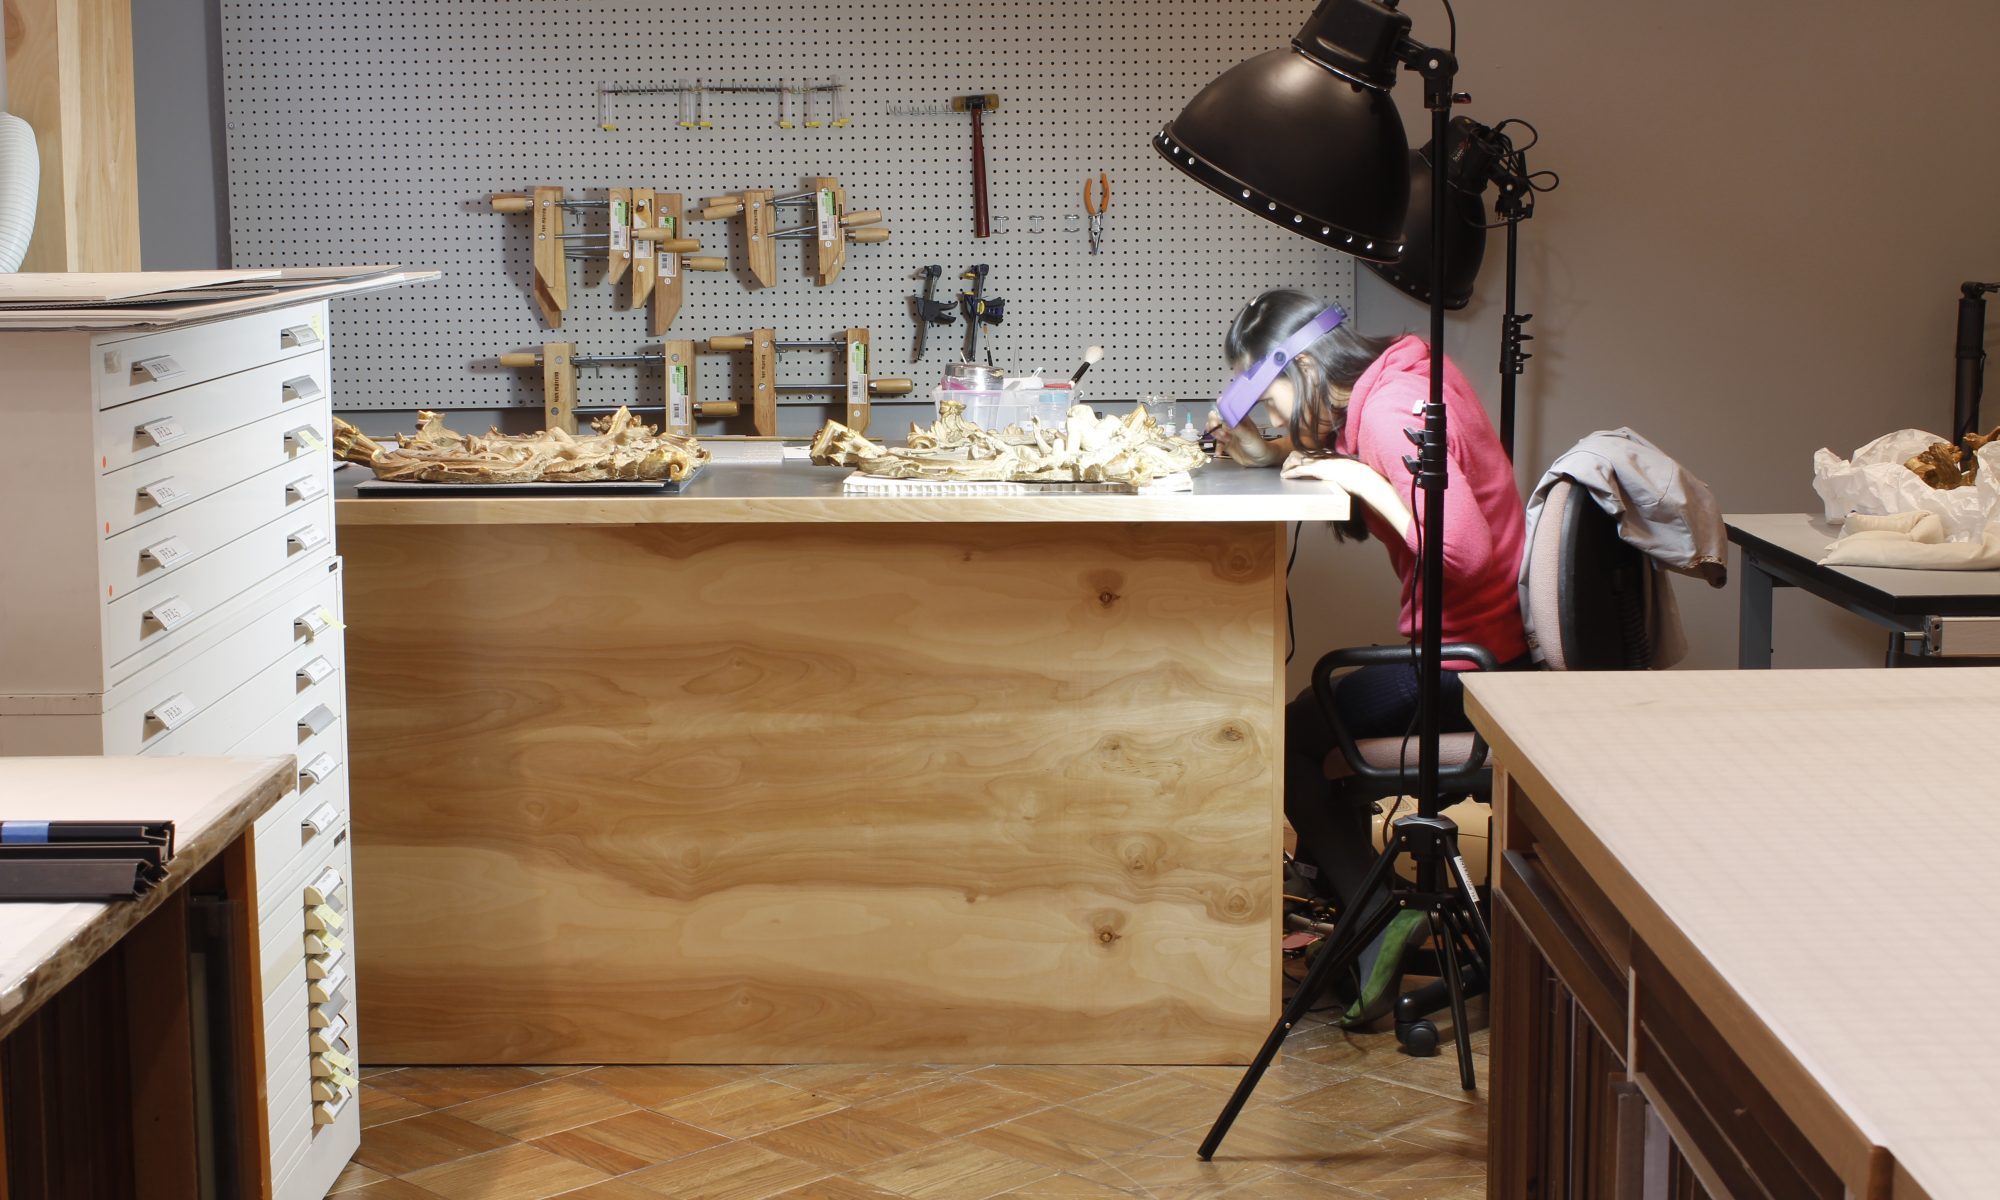 Two wall reliefs lay on a table, while Samantha works at the right under a bright light, with tools in the background.